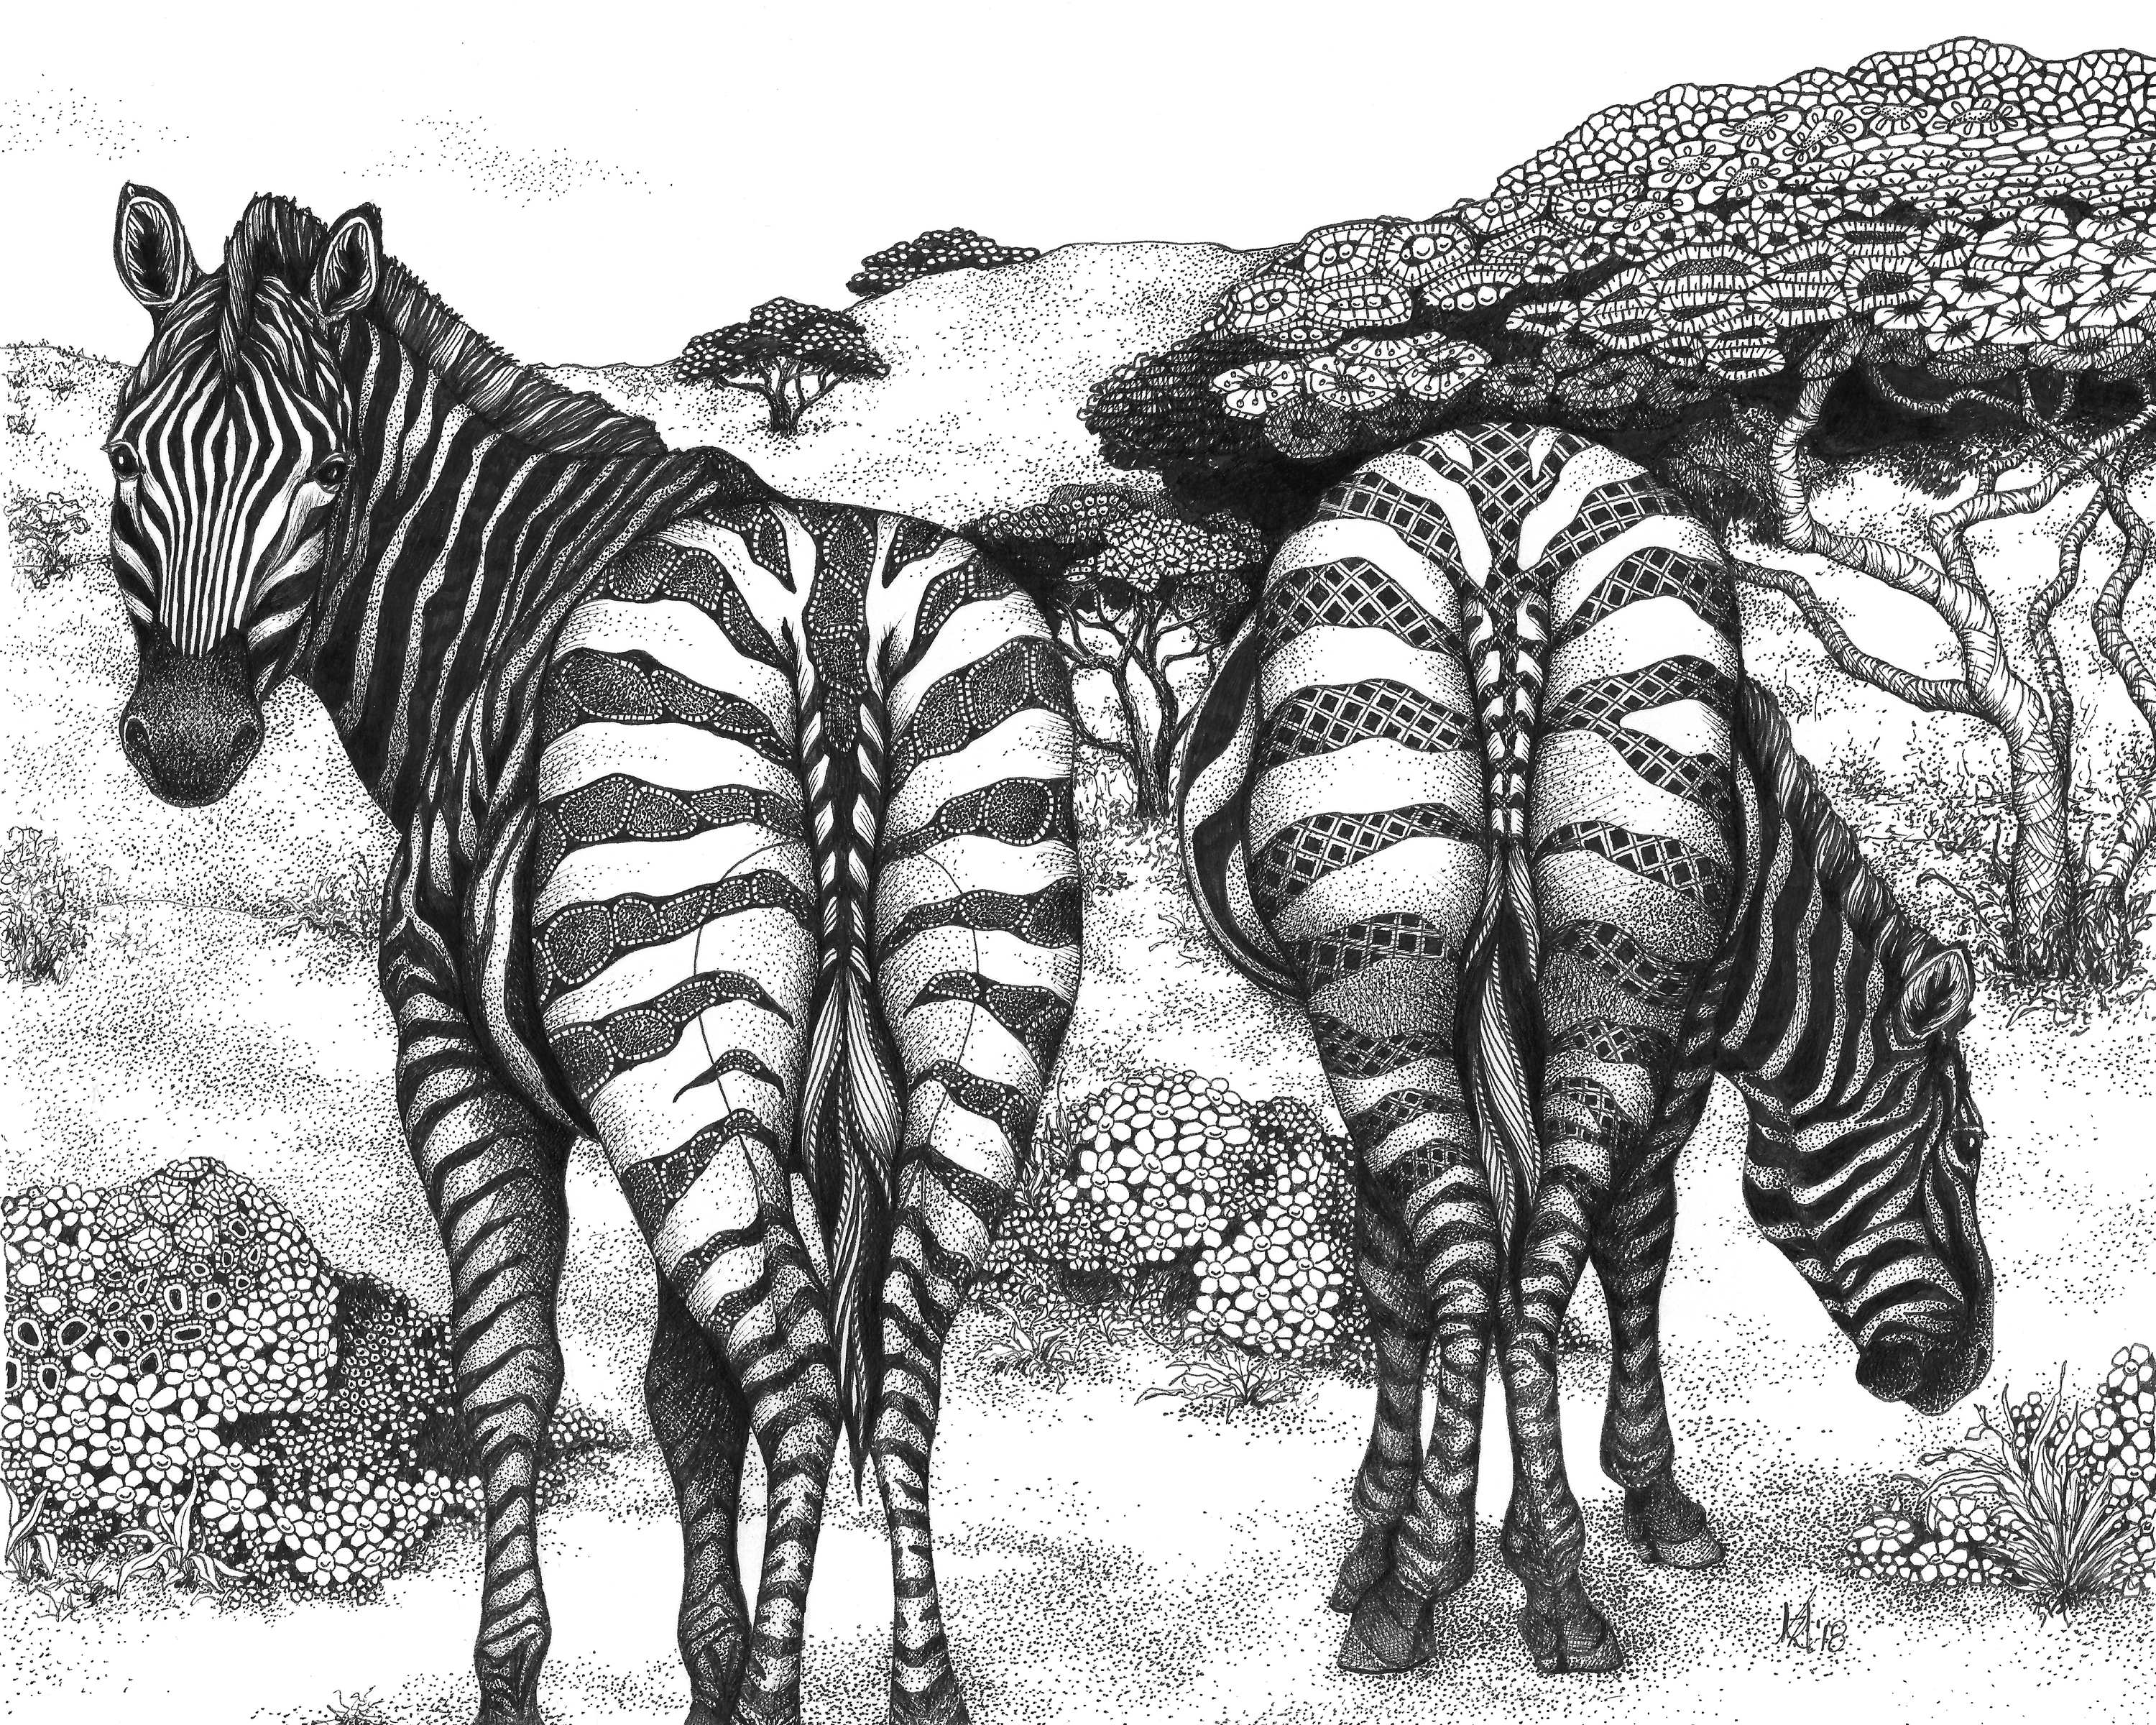 Zebra butts two of a kind jsztyx